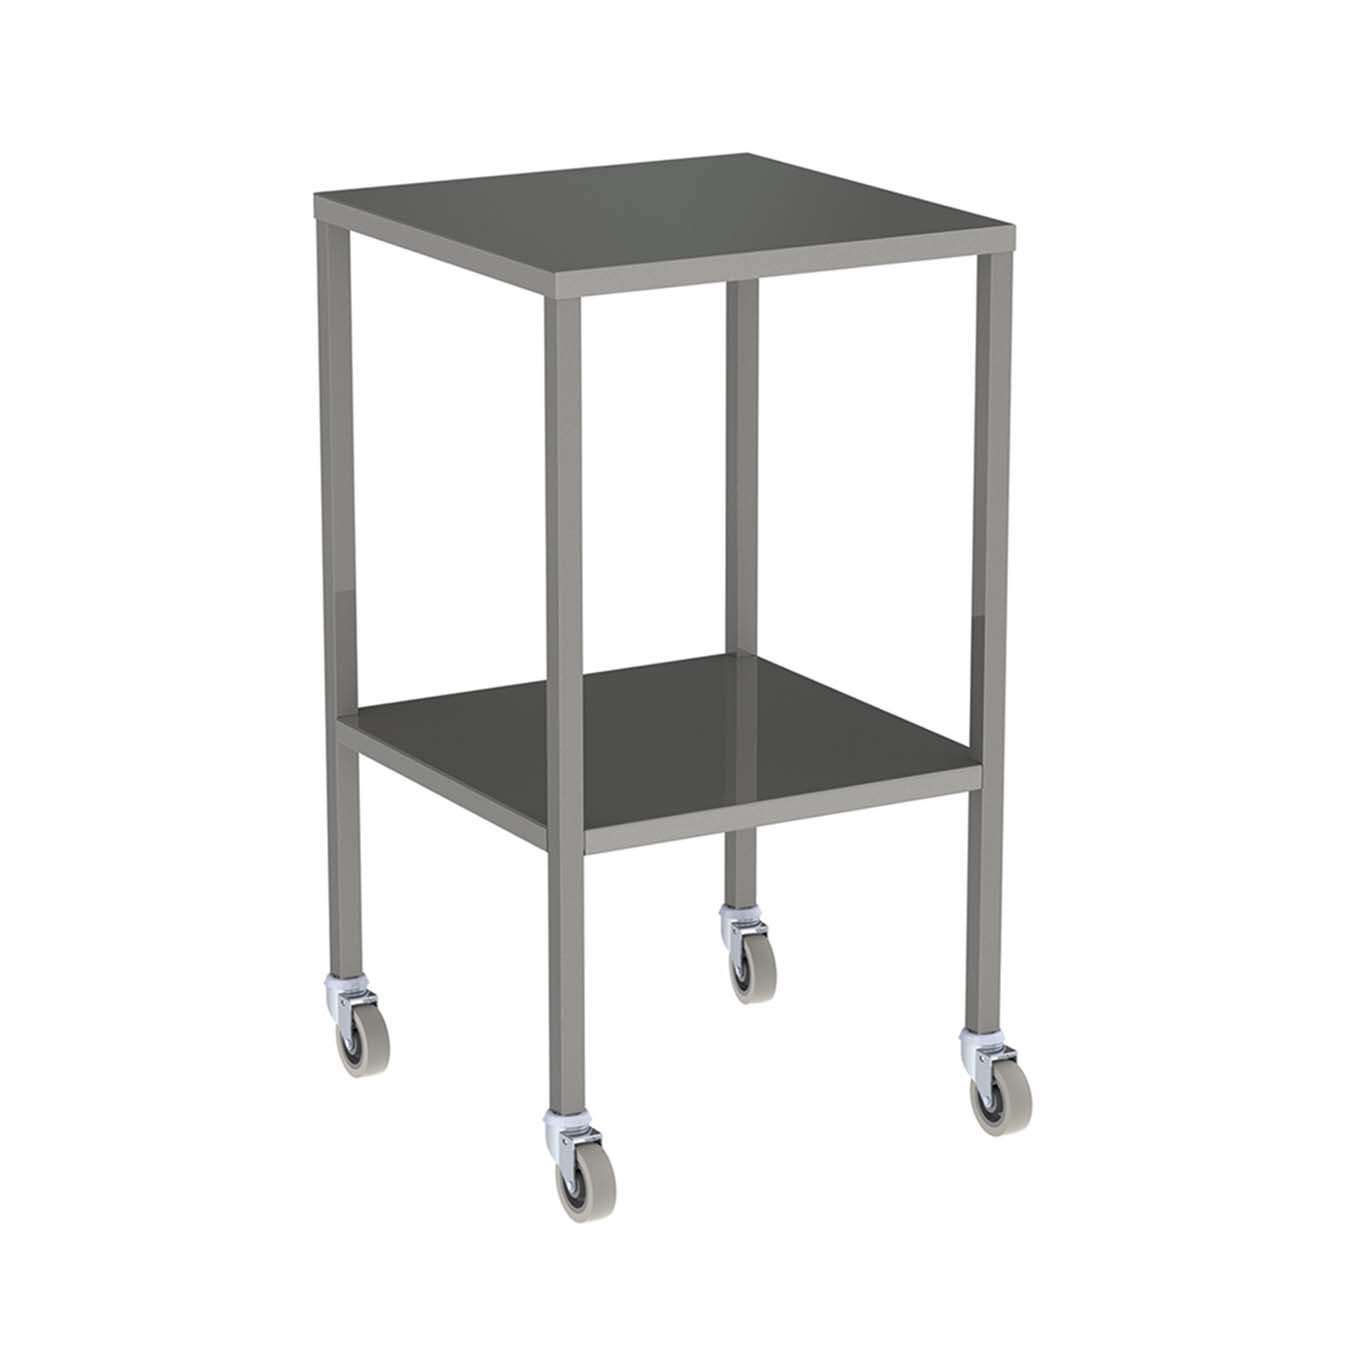 AX001_1_Dressing-Trolley-No-Rail-Stainless-Steel_490x490x900mm_1